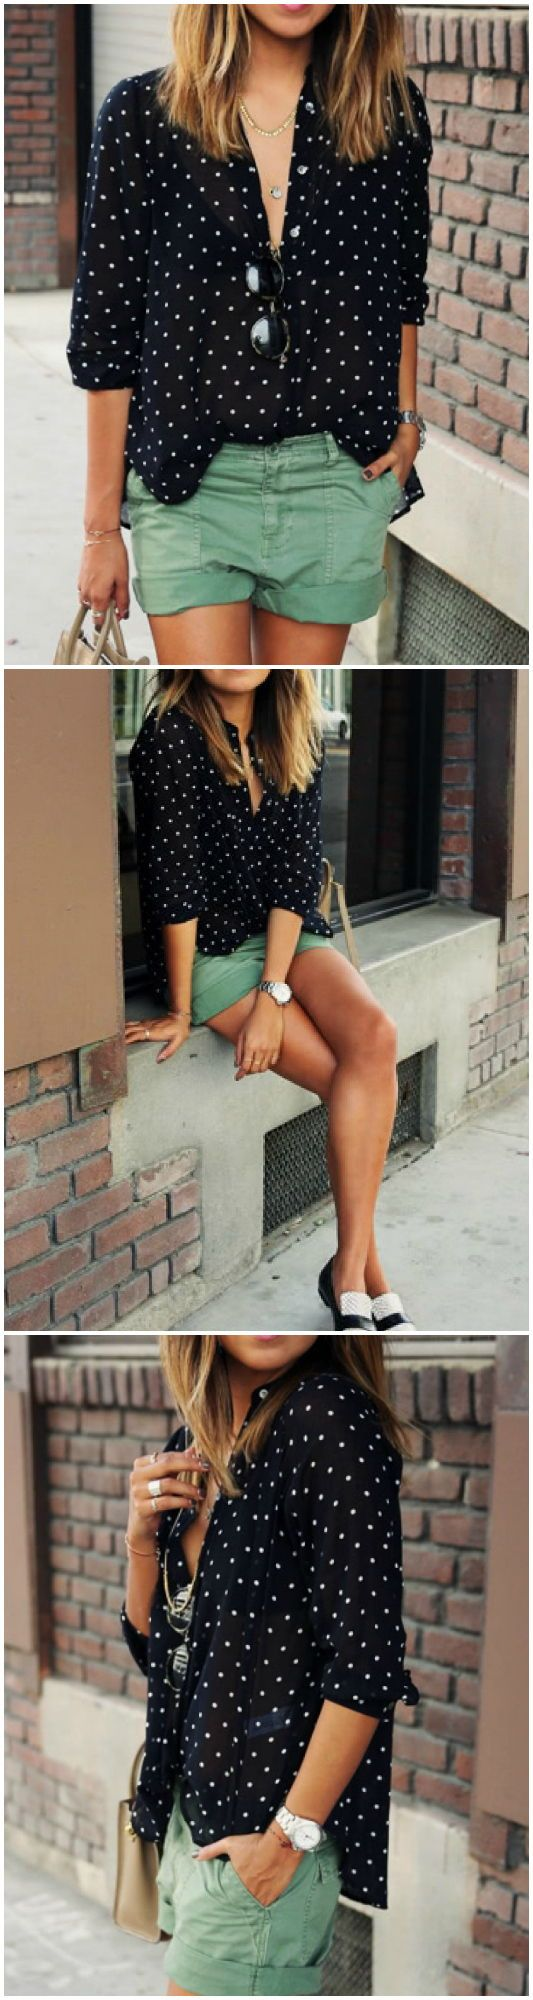 Black Polka Dot With Buttons Blouse #ad